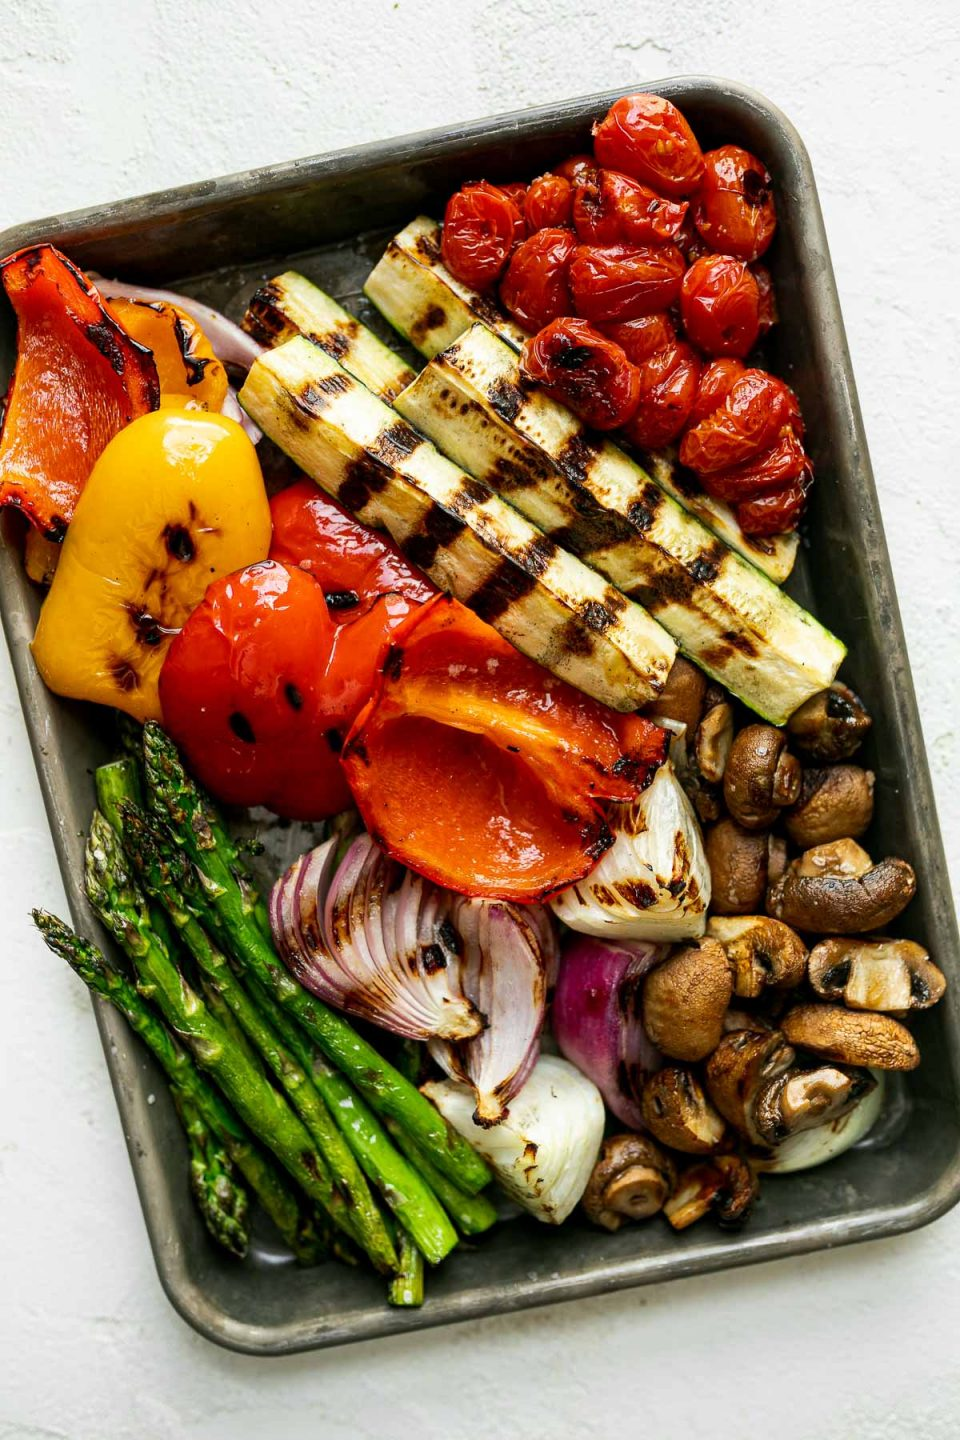 A variety of grilled veggies including grilled asparagus, grilled peppers, grilled onion, grilled mushrooms, grilled tomatoes, & grilled zucchini on an aluminum baking sheet. The baking sheet rests on a white surface.